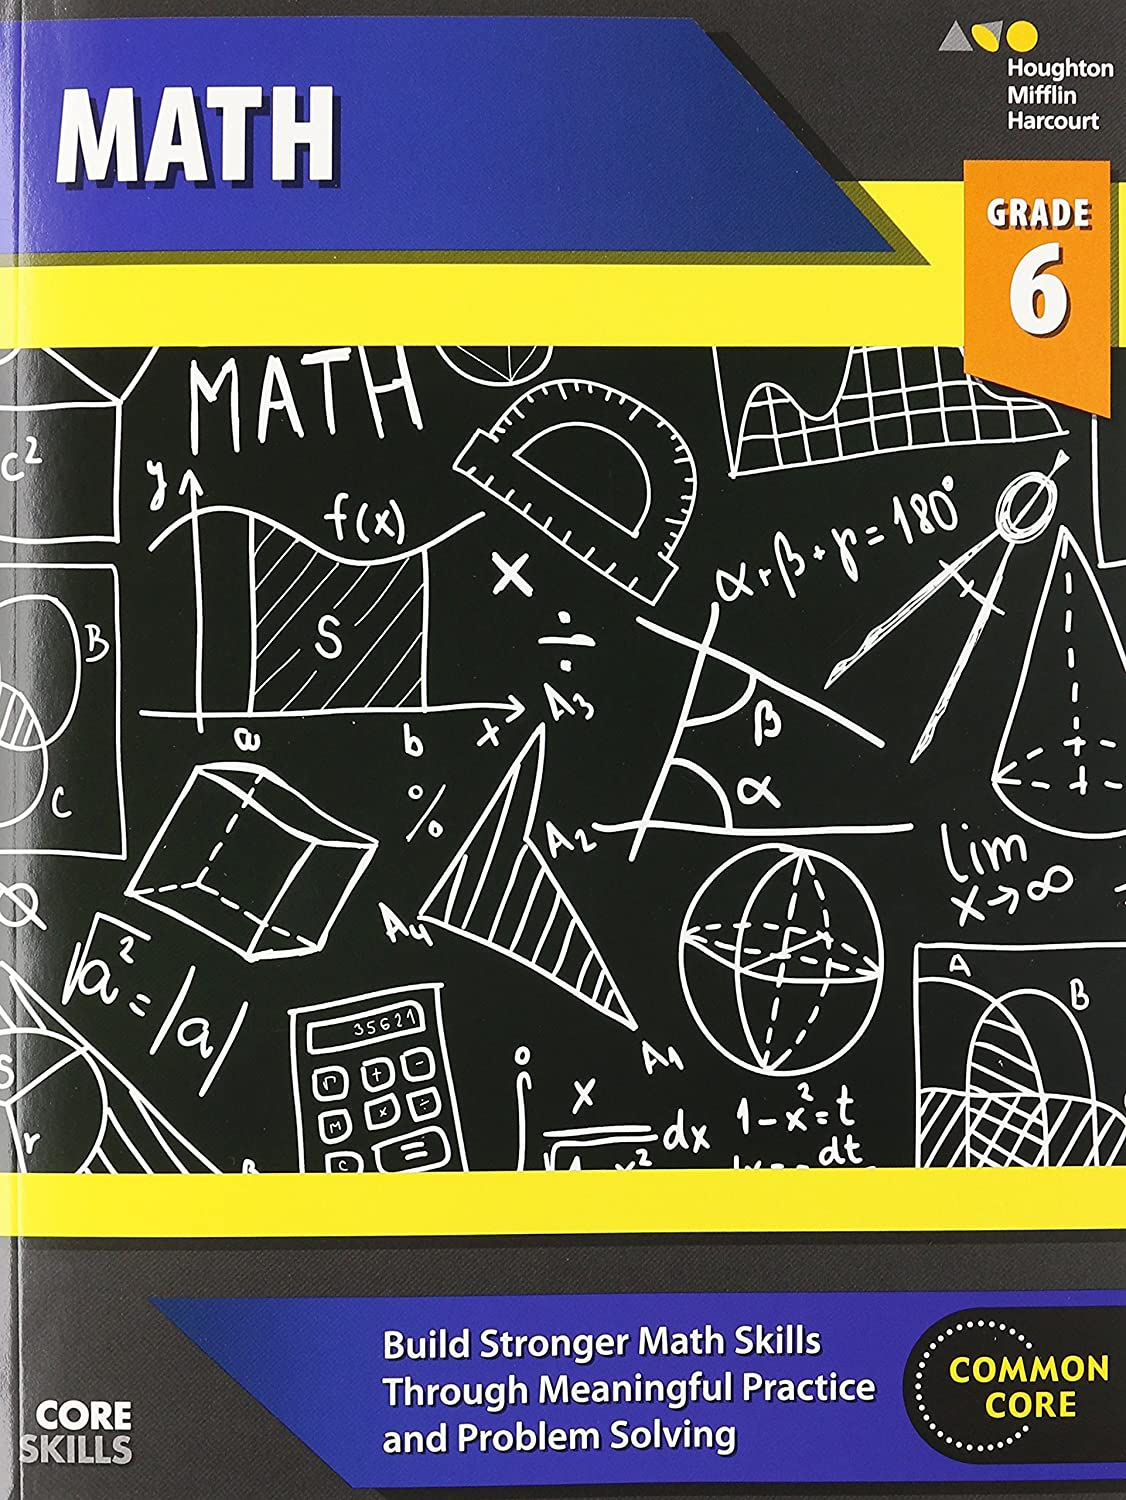 Worksheets Houghton Mifflin Harcourt Math Worksheets Steck-Vaughn Core Skills Mathematics: Workbook Grade 6: ST